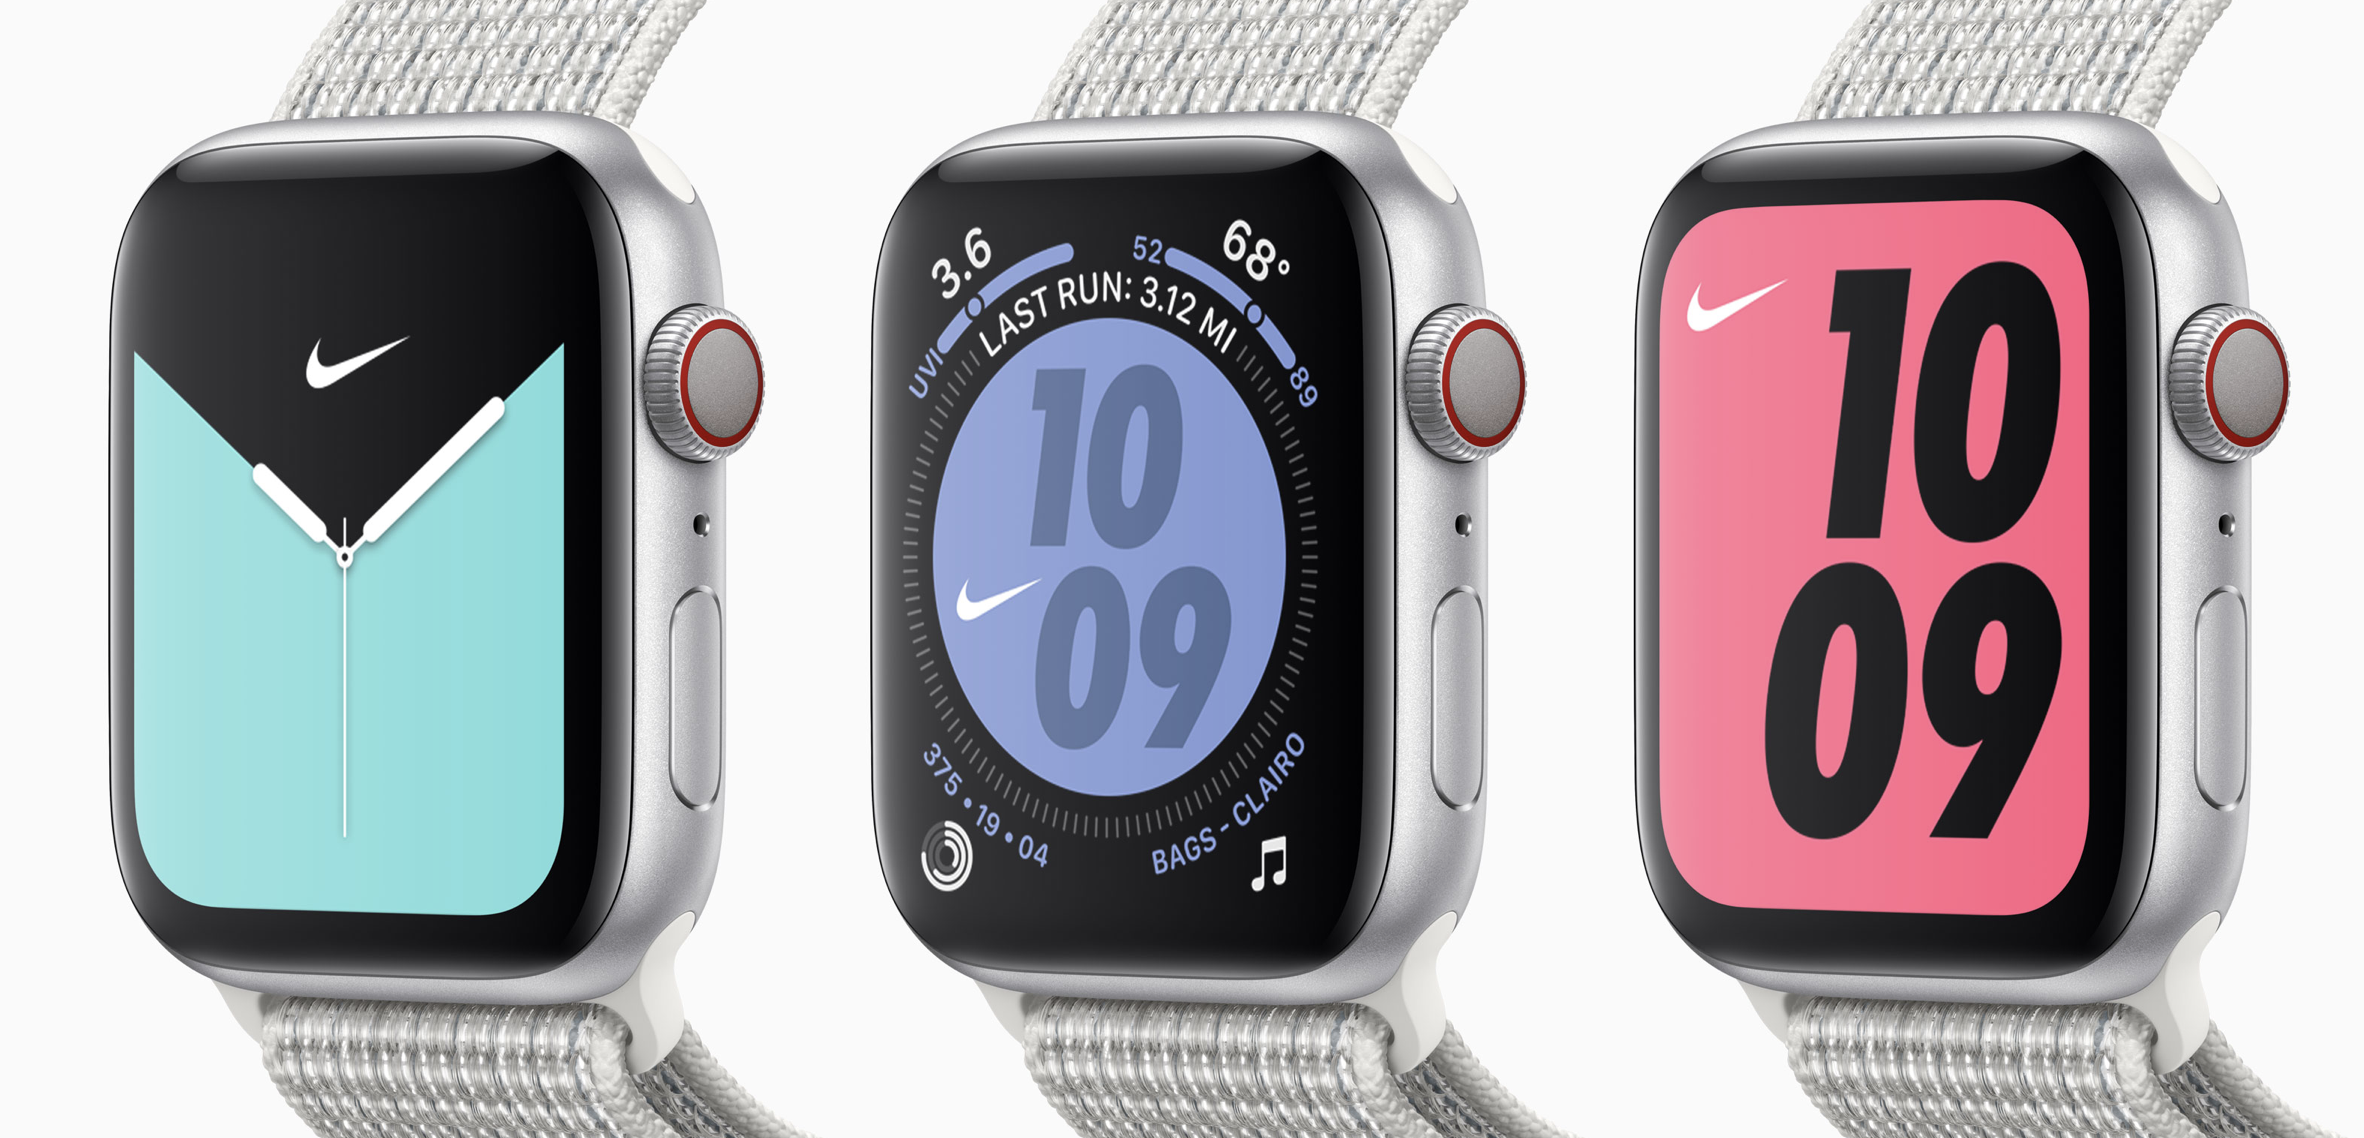 Señora Resonar estimular  Apple Watch Nike hits stores today, some models backordered until December  - 9to5Mac